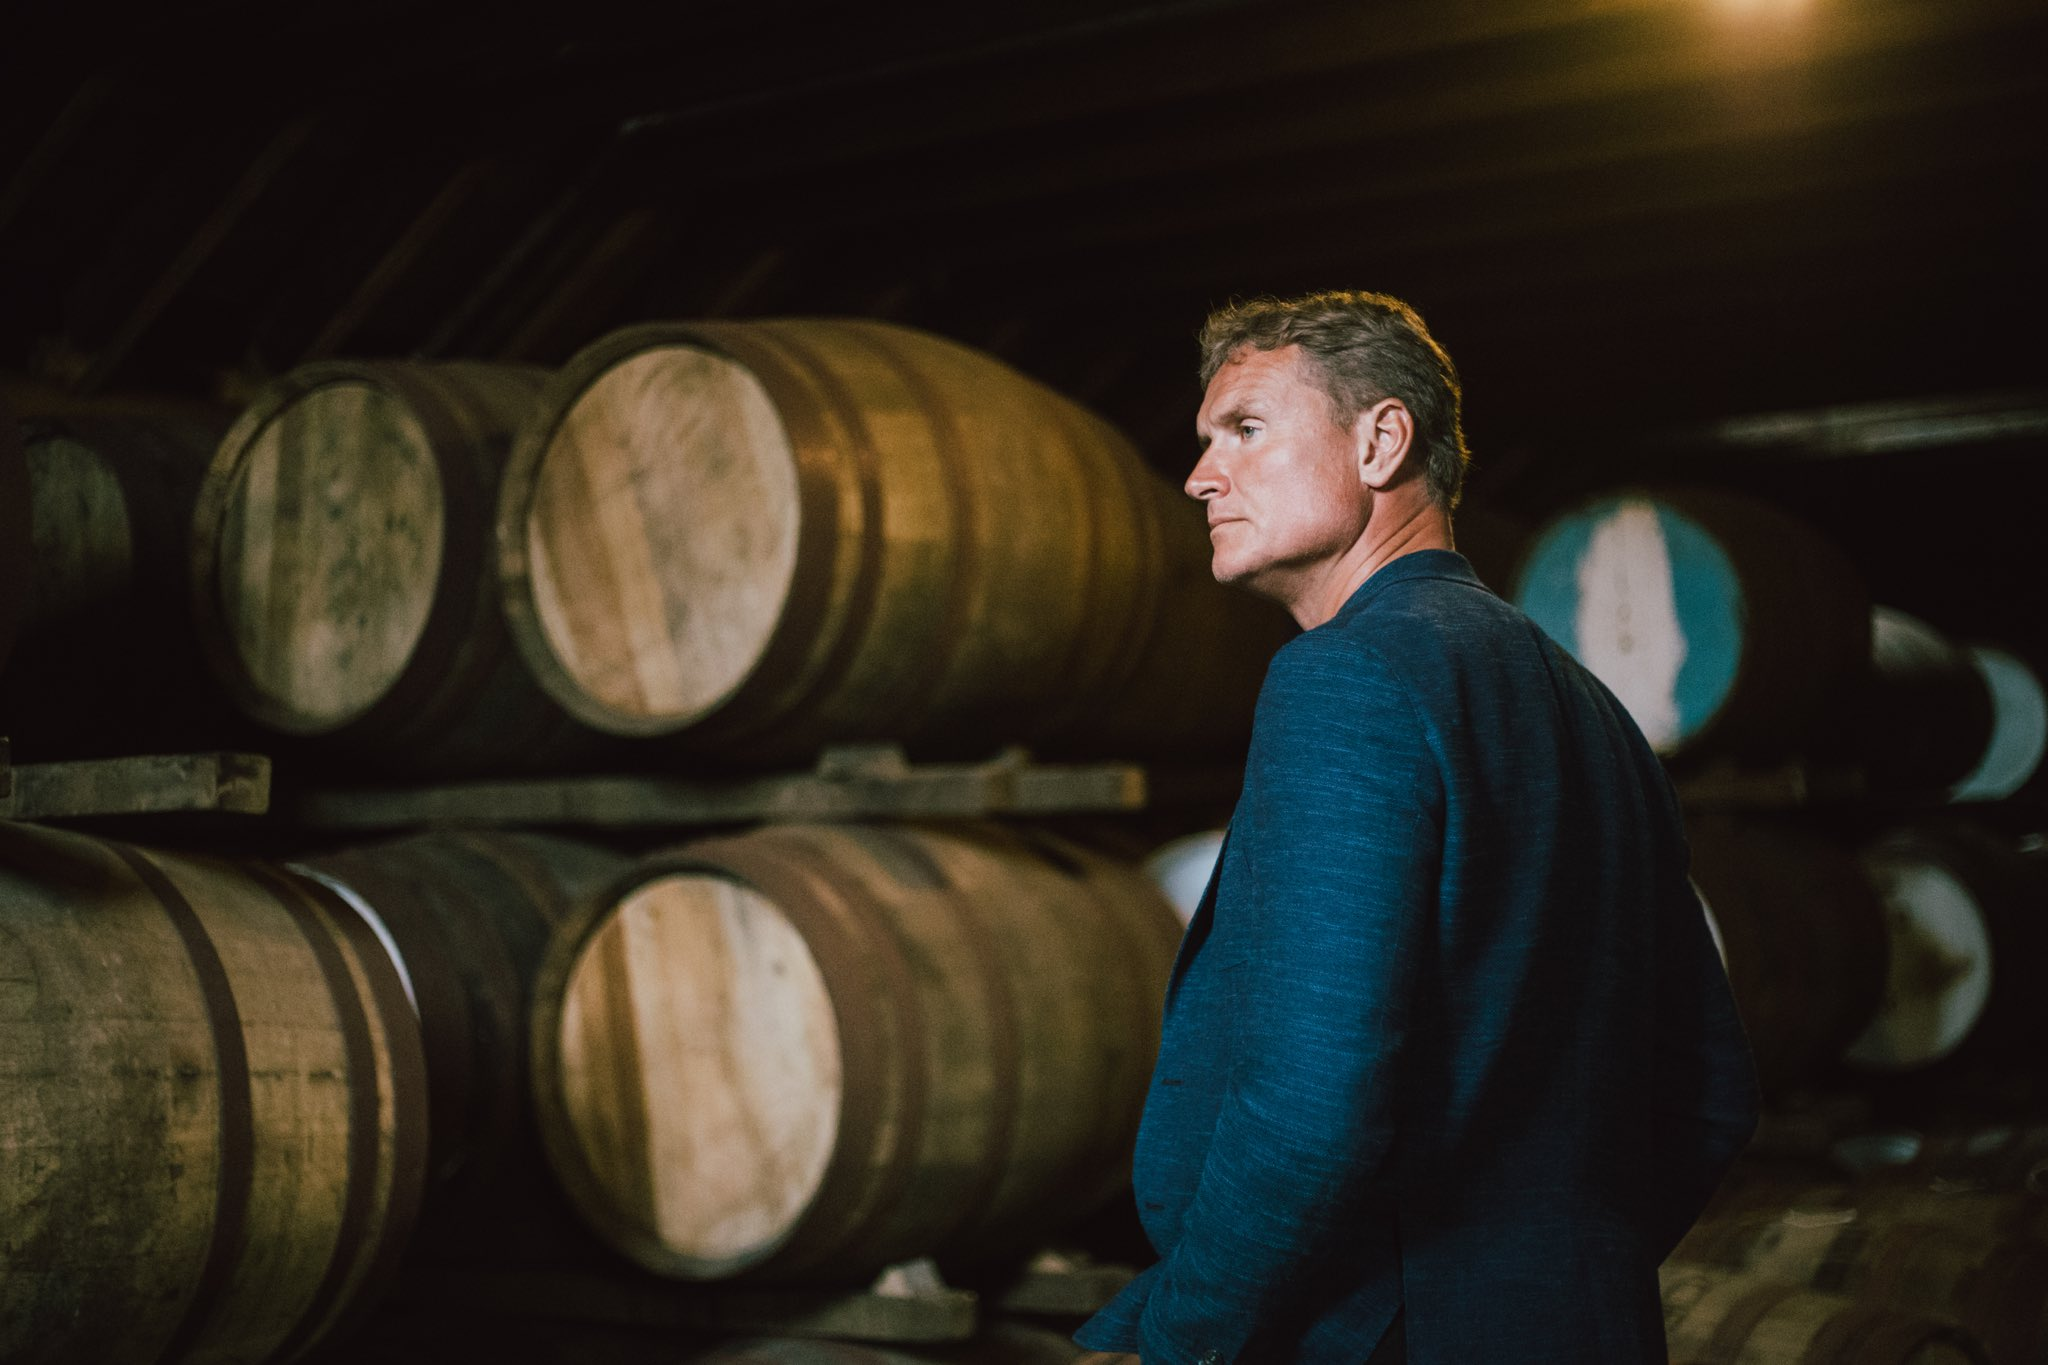 F1-racing-legend-David-Coulthard-launches-whiskies-in-partnership-with-Highland-Park-to-raise-money-for-charity-2